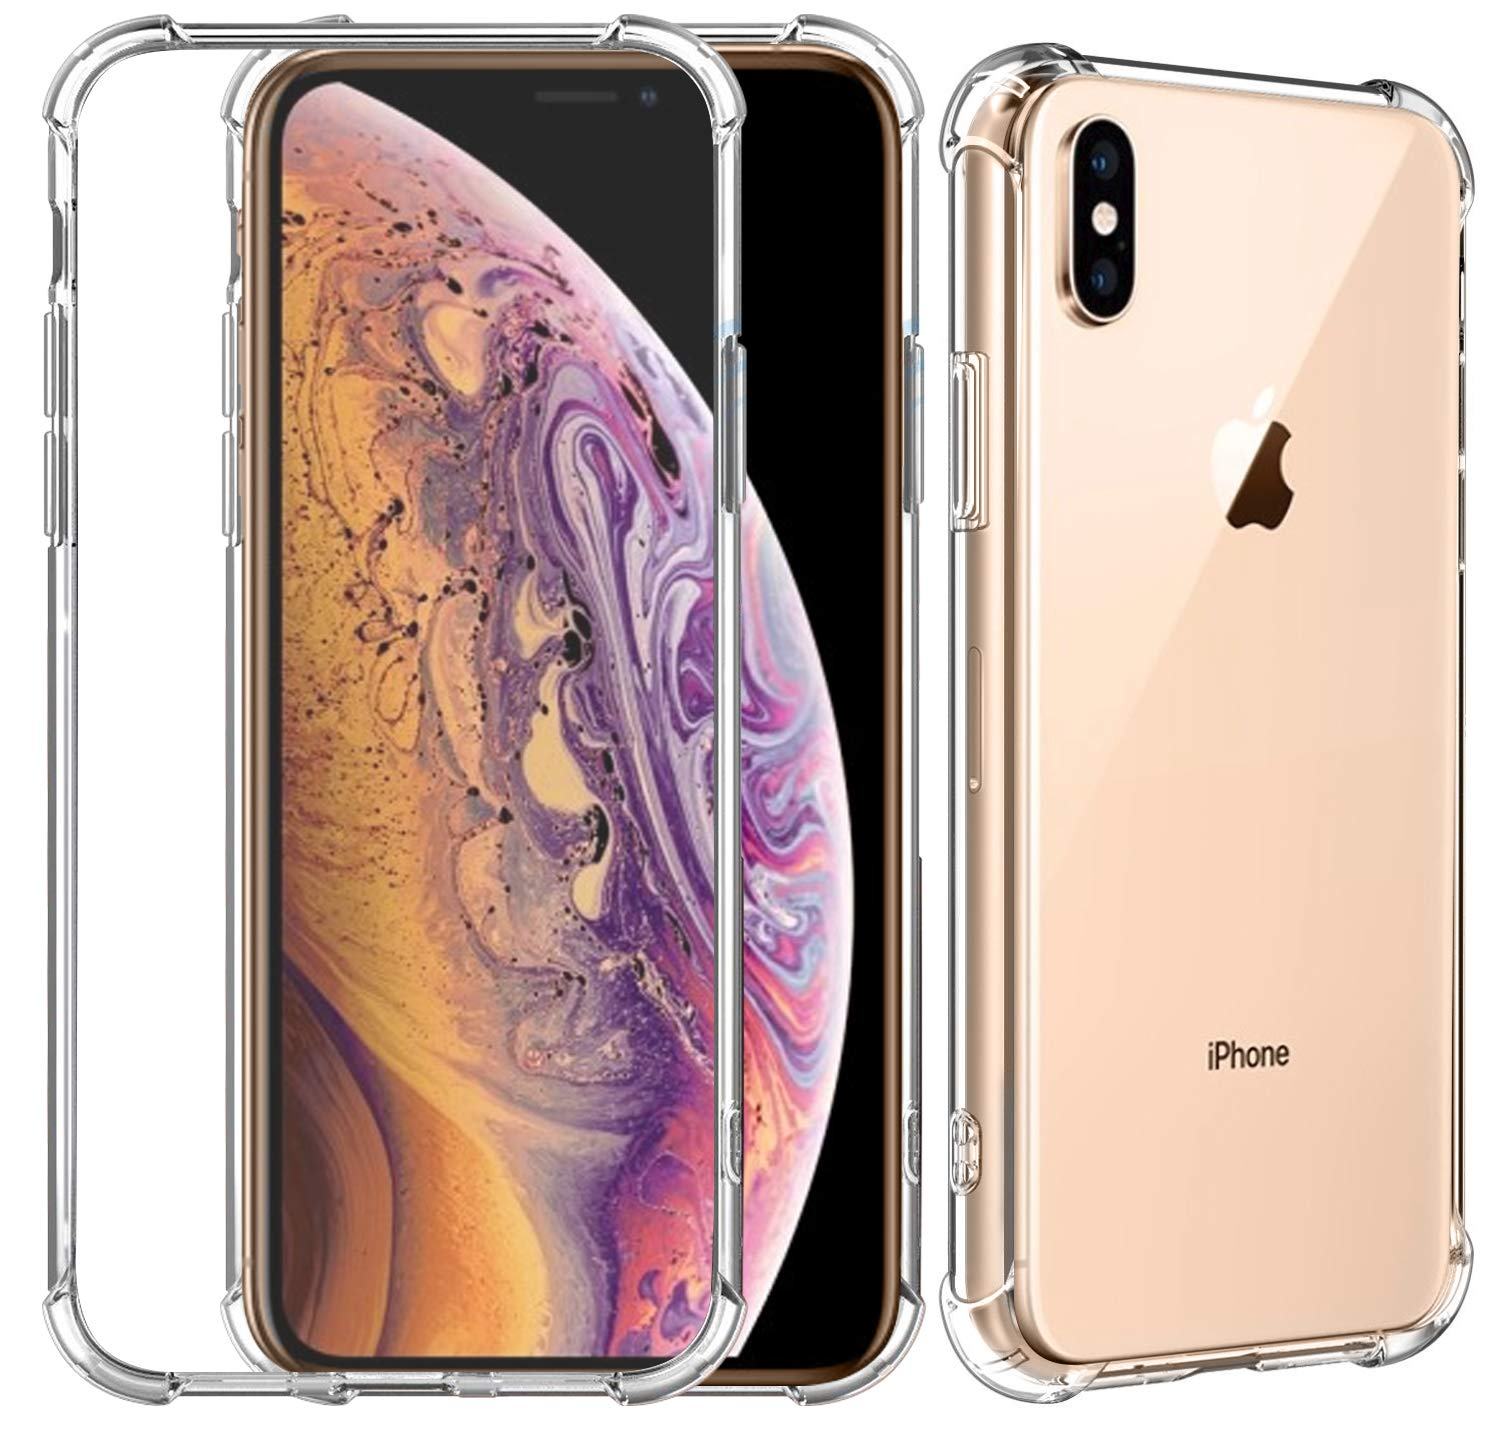 SAMAR iPhone XS Case, Premium Quality Apple iPhone XS Four Corner Full Body Cover Shockproof TPU Silicon Bumper Case [Crystal Clear] Extreme Armor Protection Hybrid Cover for iPhone 10S